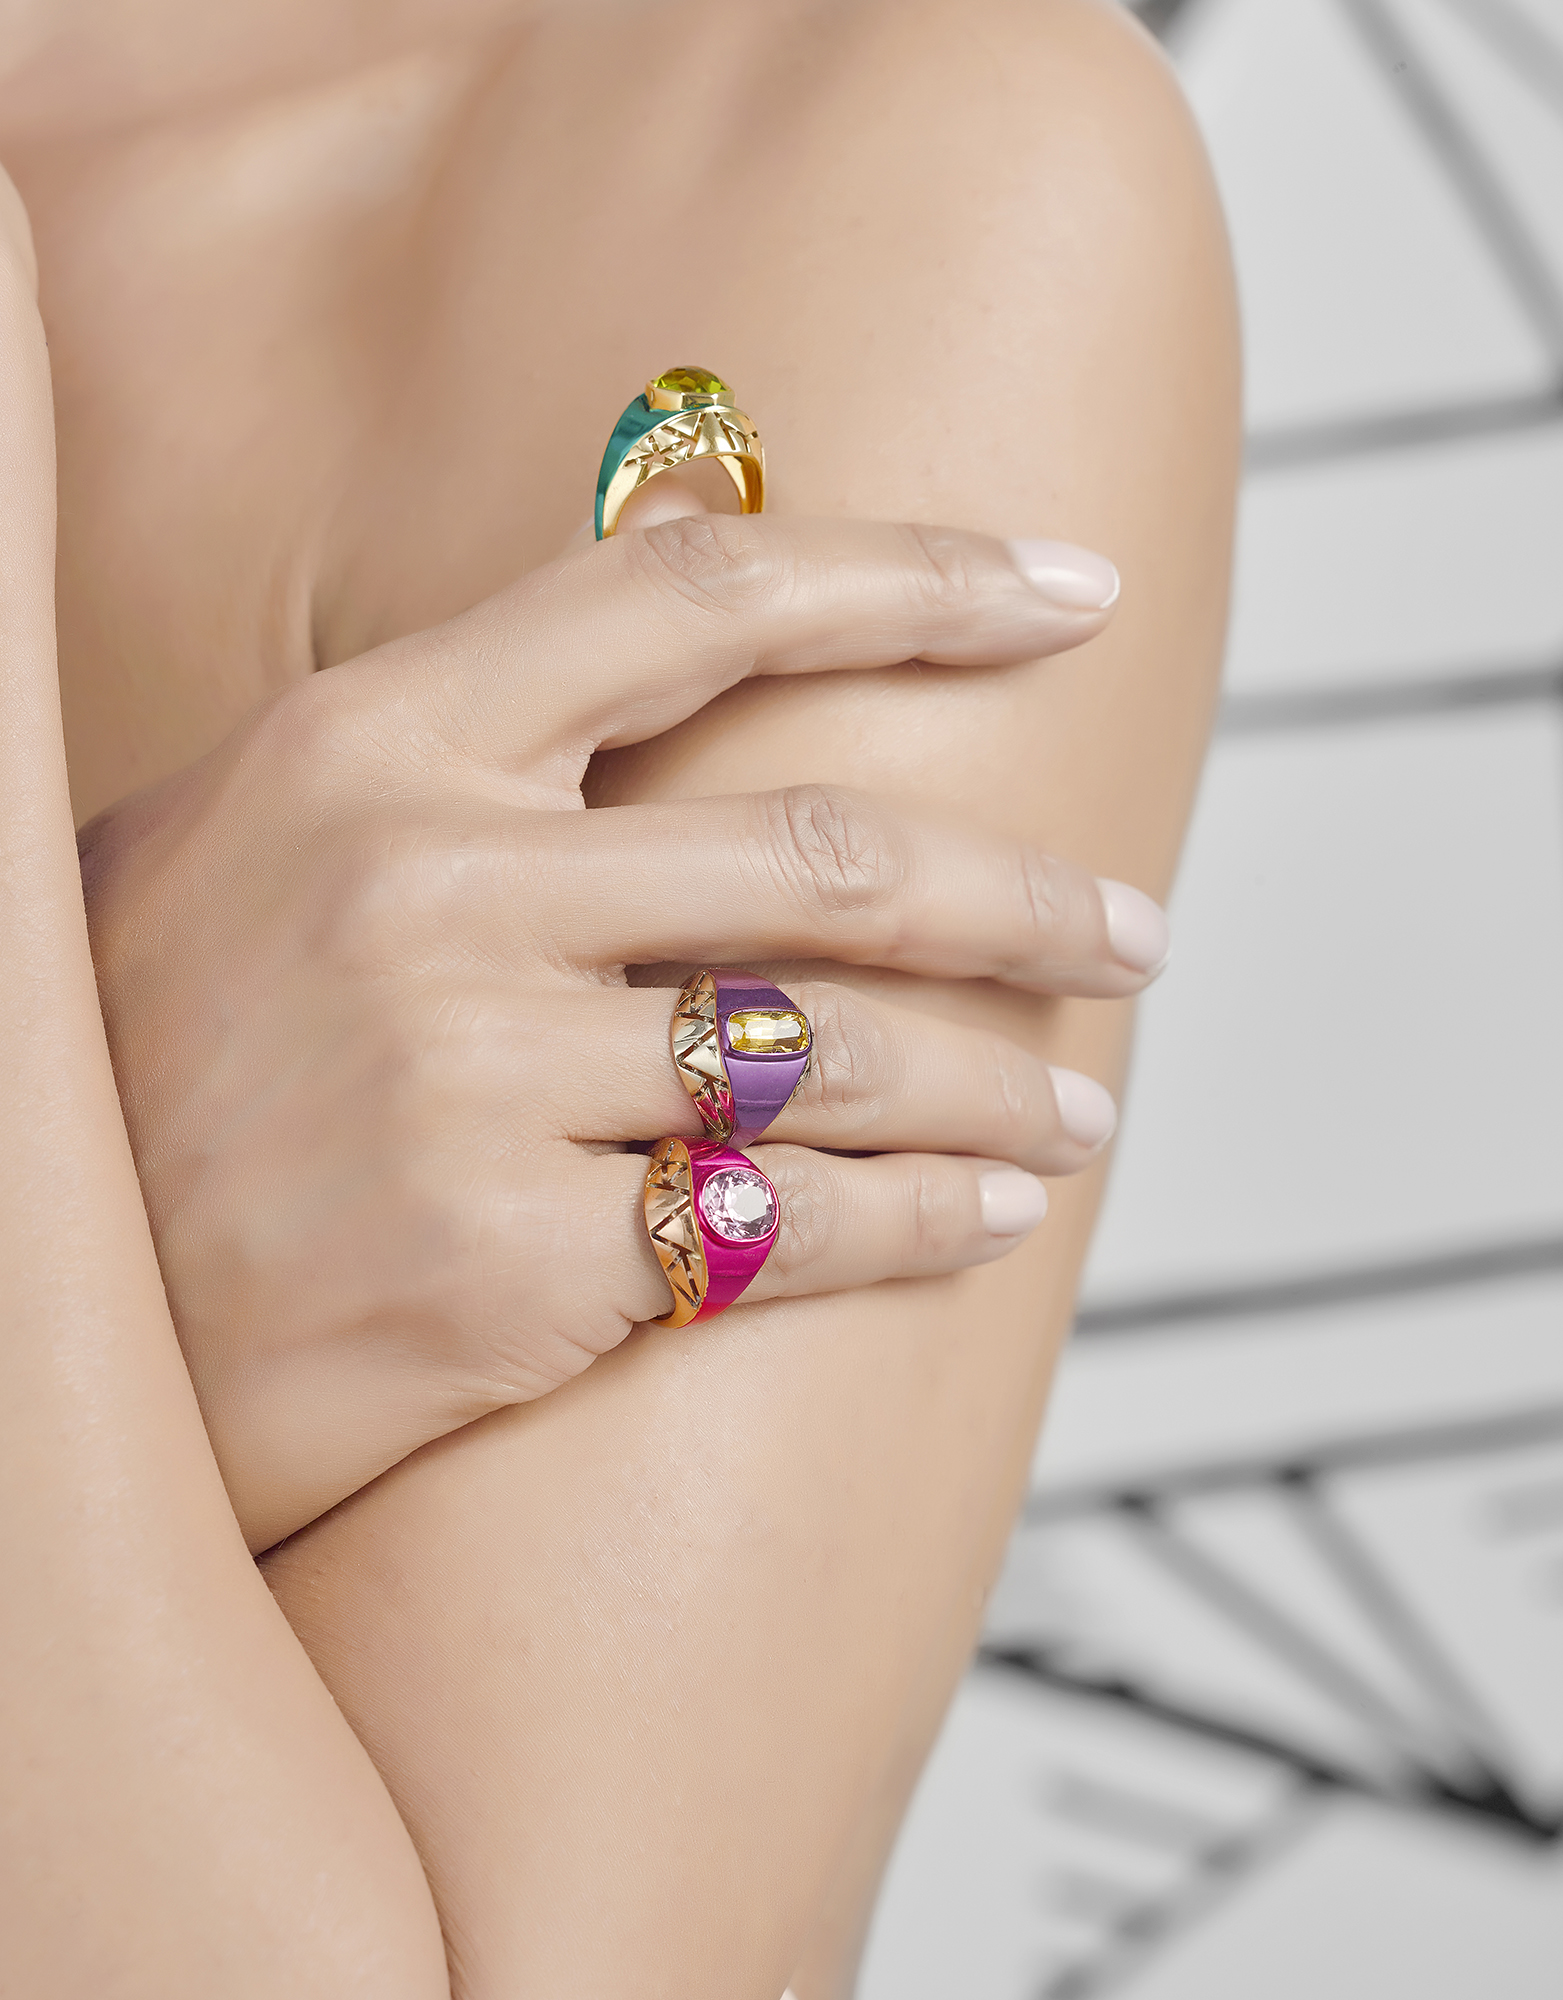 Model wearing jewellery from howlett photography, Rings on hand on arm. Colour gem stone rings from creative still life photographer chris howlett